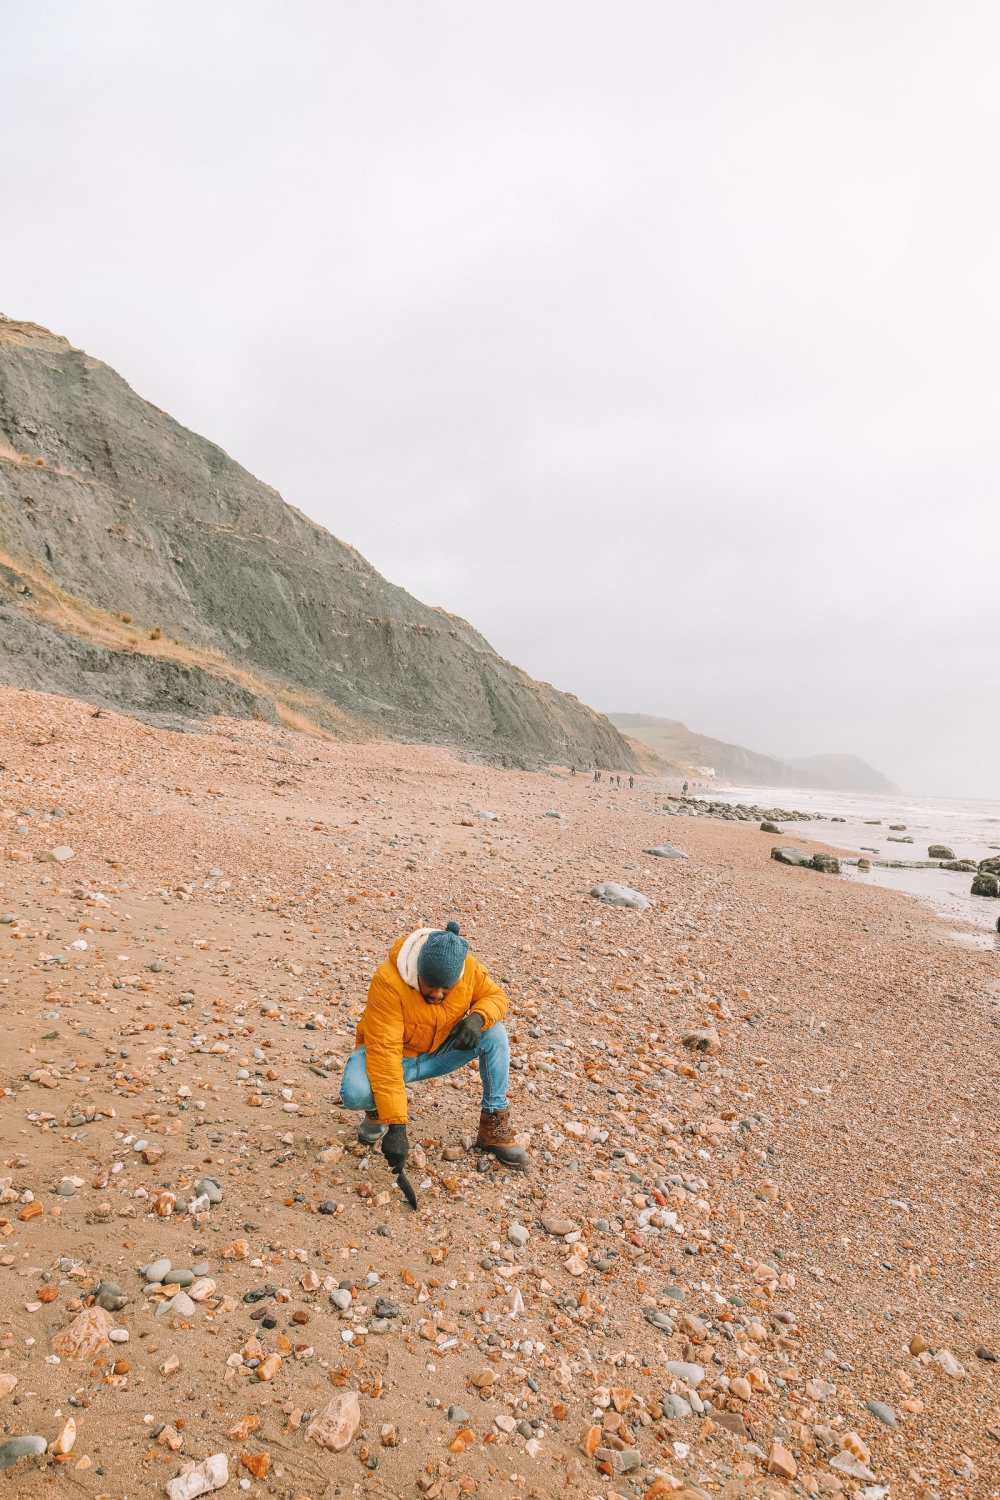 Searching For Dinosaurs And Fossils On The Jurassic Coast Of England (10)